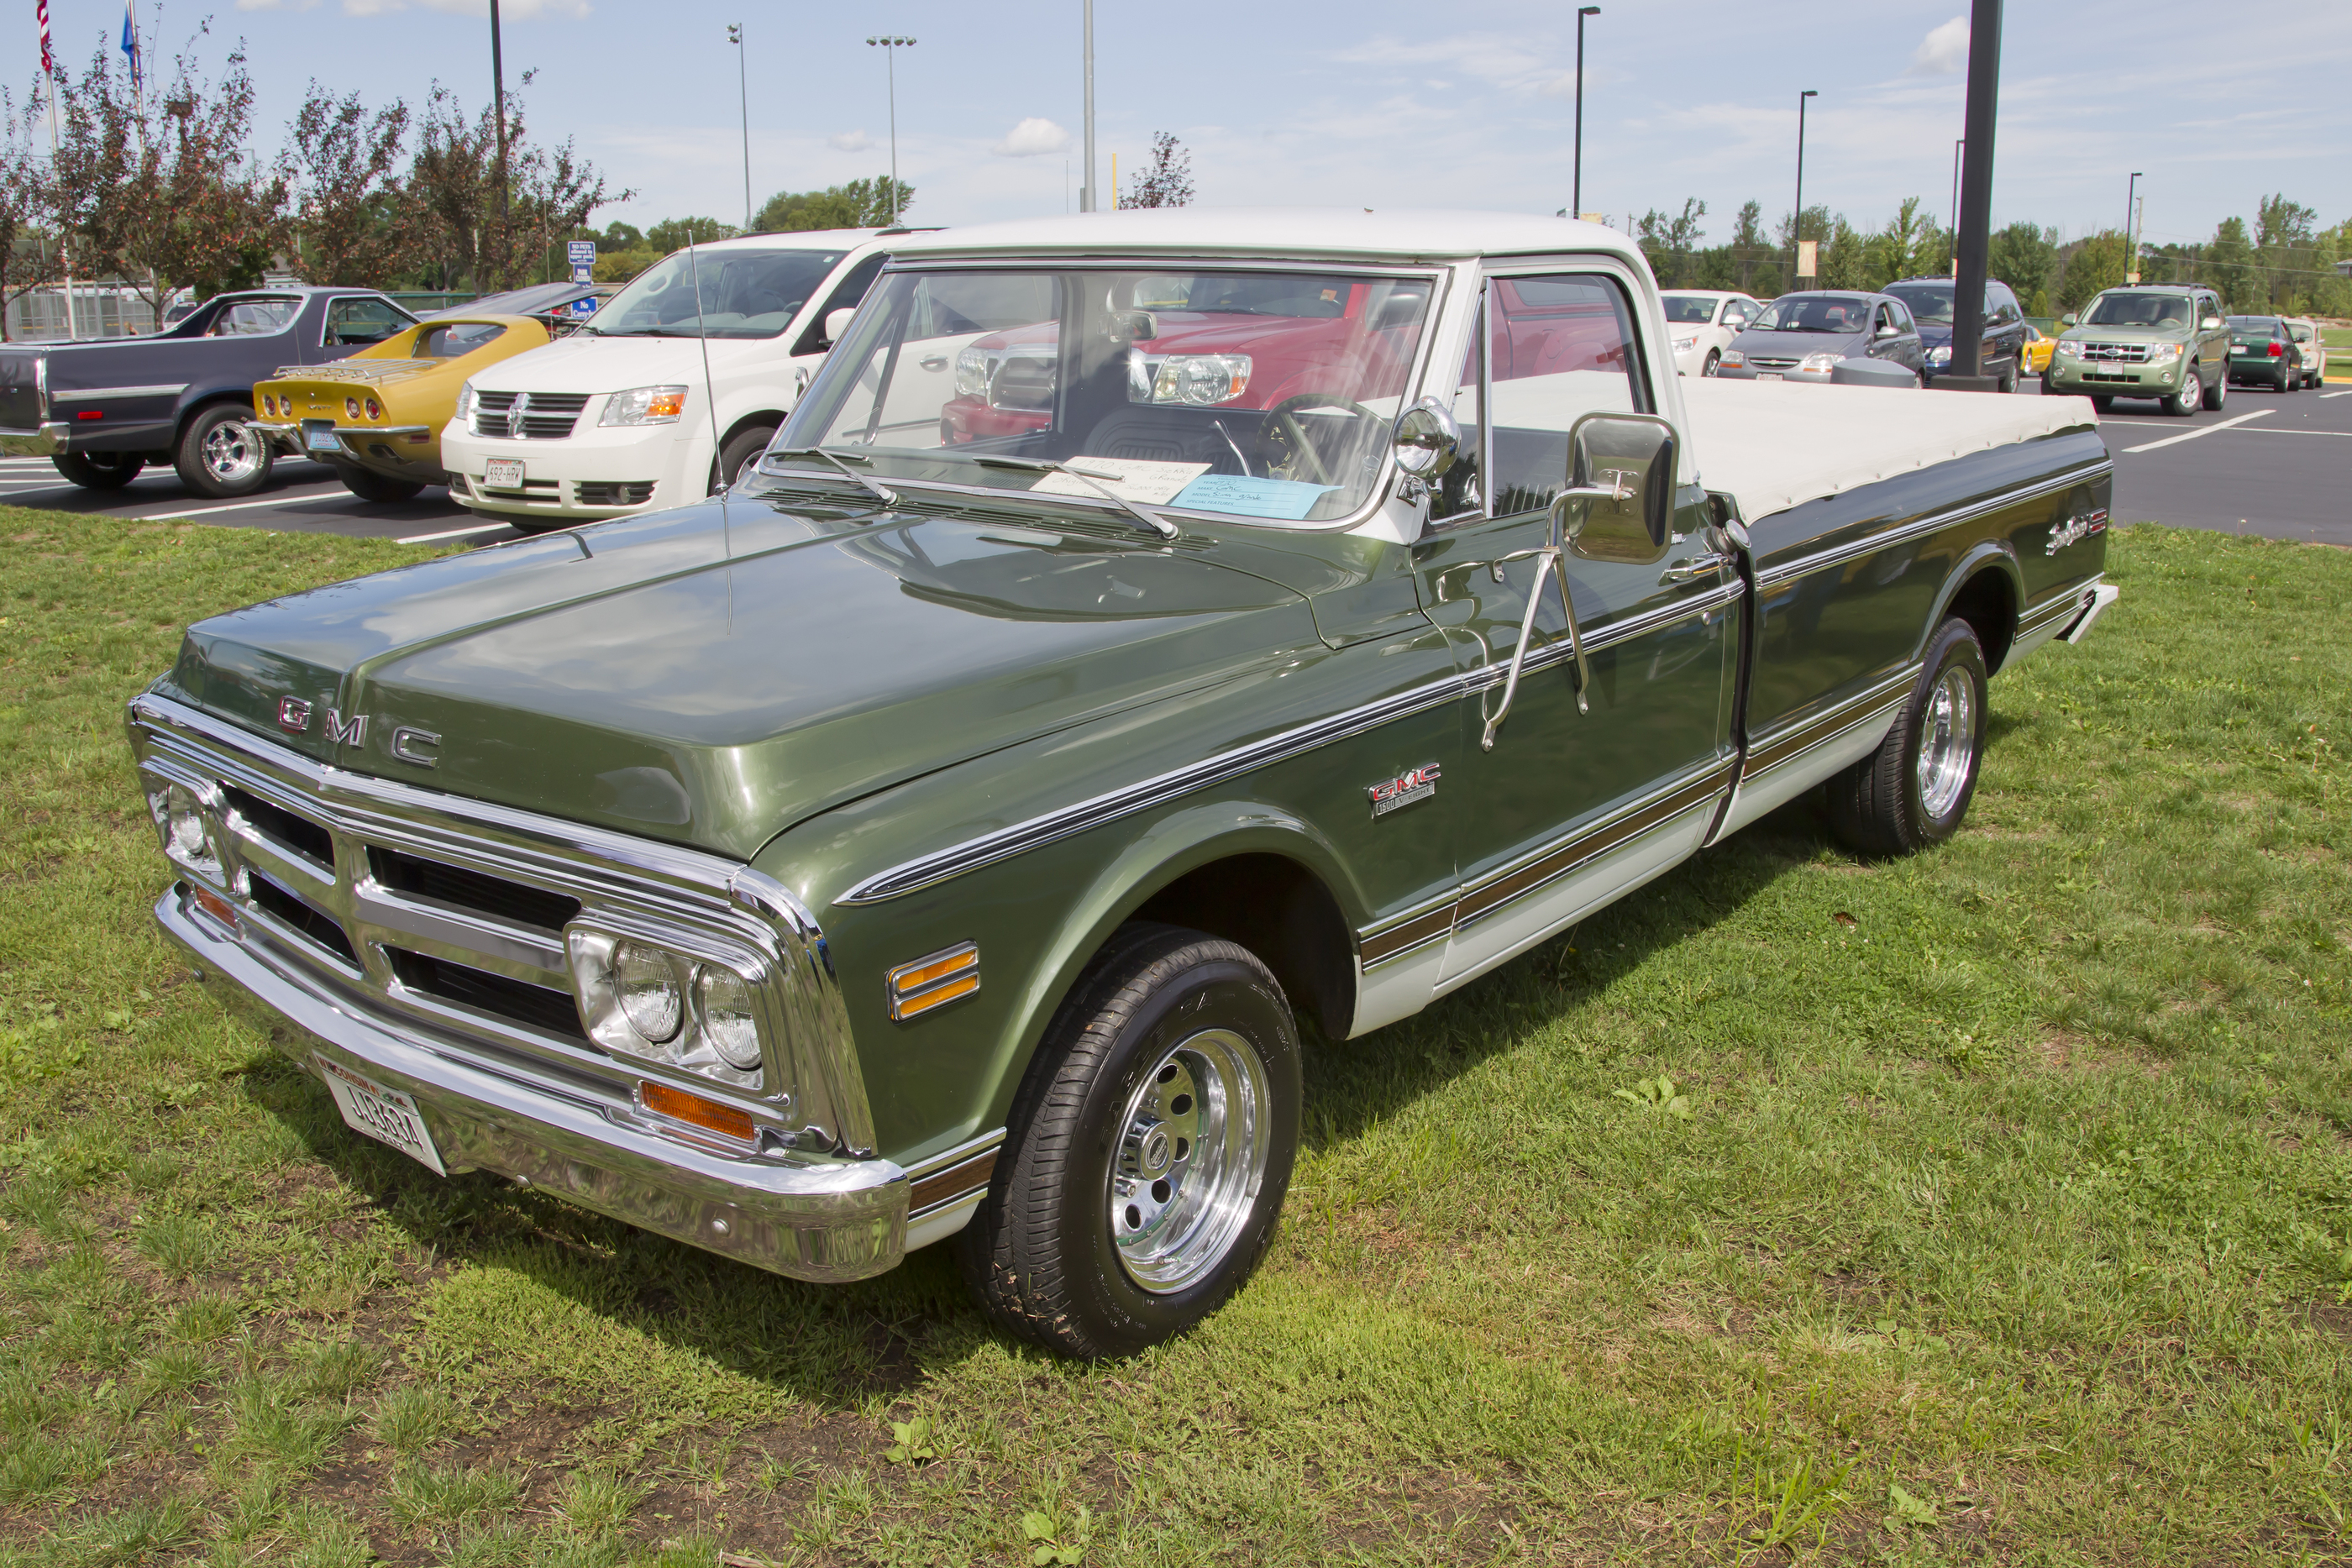 1970 GMC SIERRA GRAND BY MYBAITSHOP